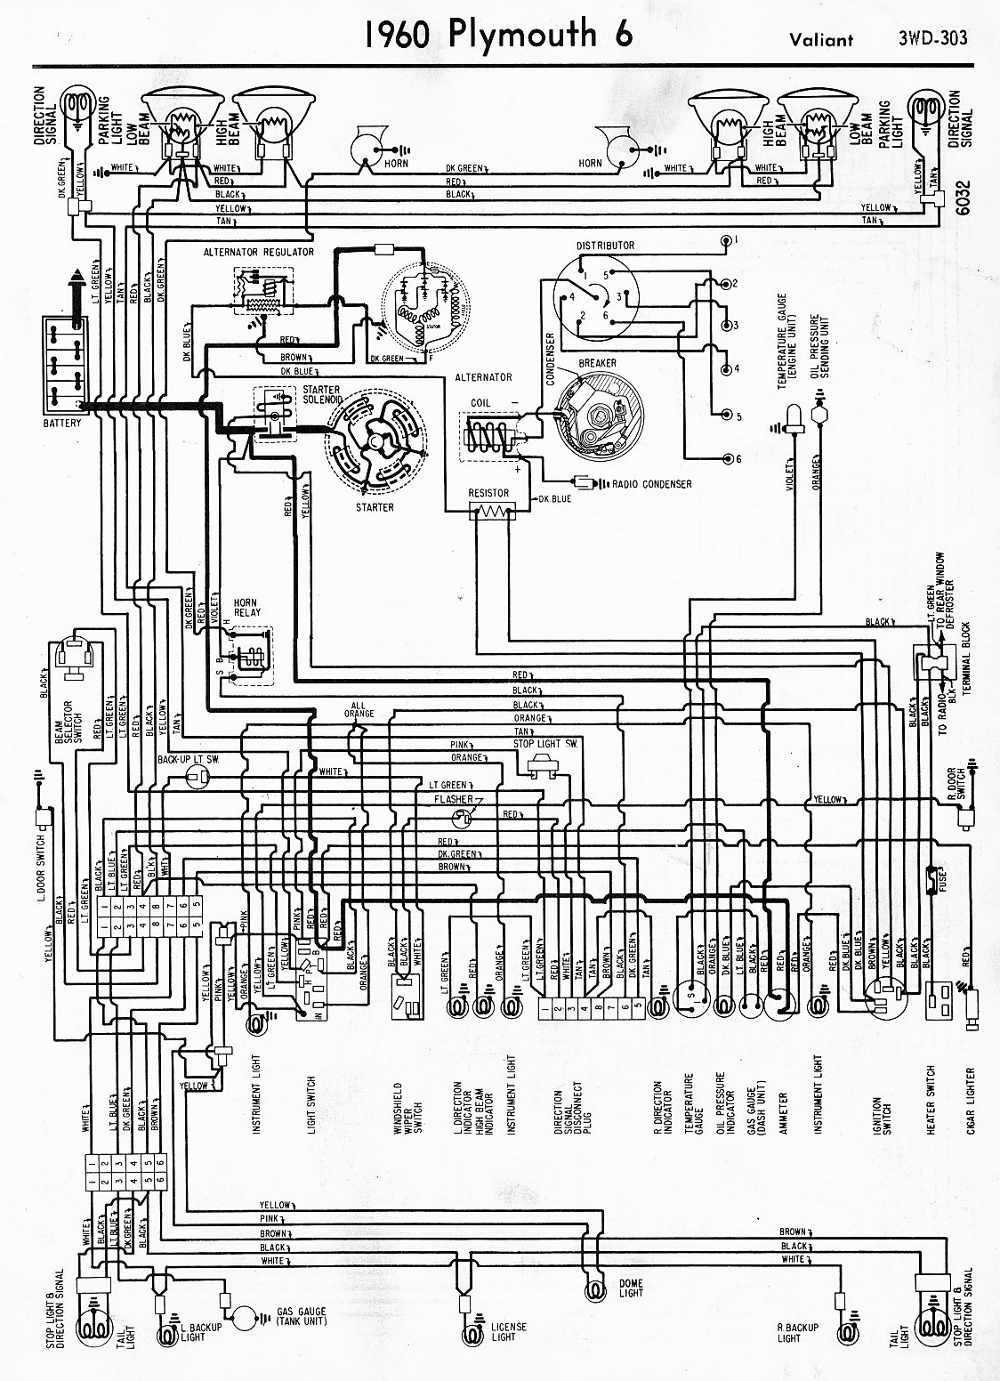 plymouth car manuals wiring diagrams pdf amp fault codes [ 1000 x 1381 Pixel ]